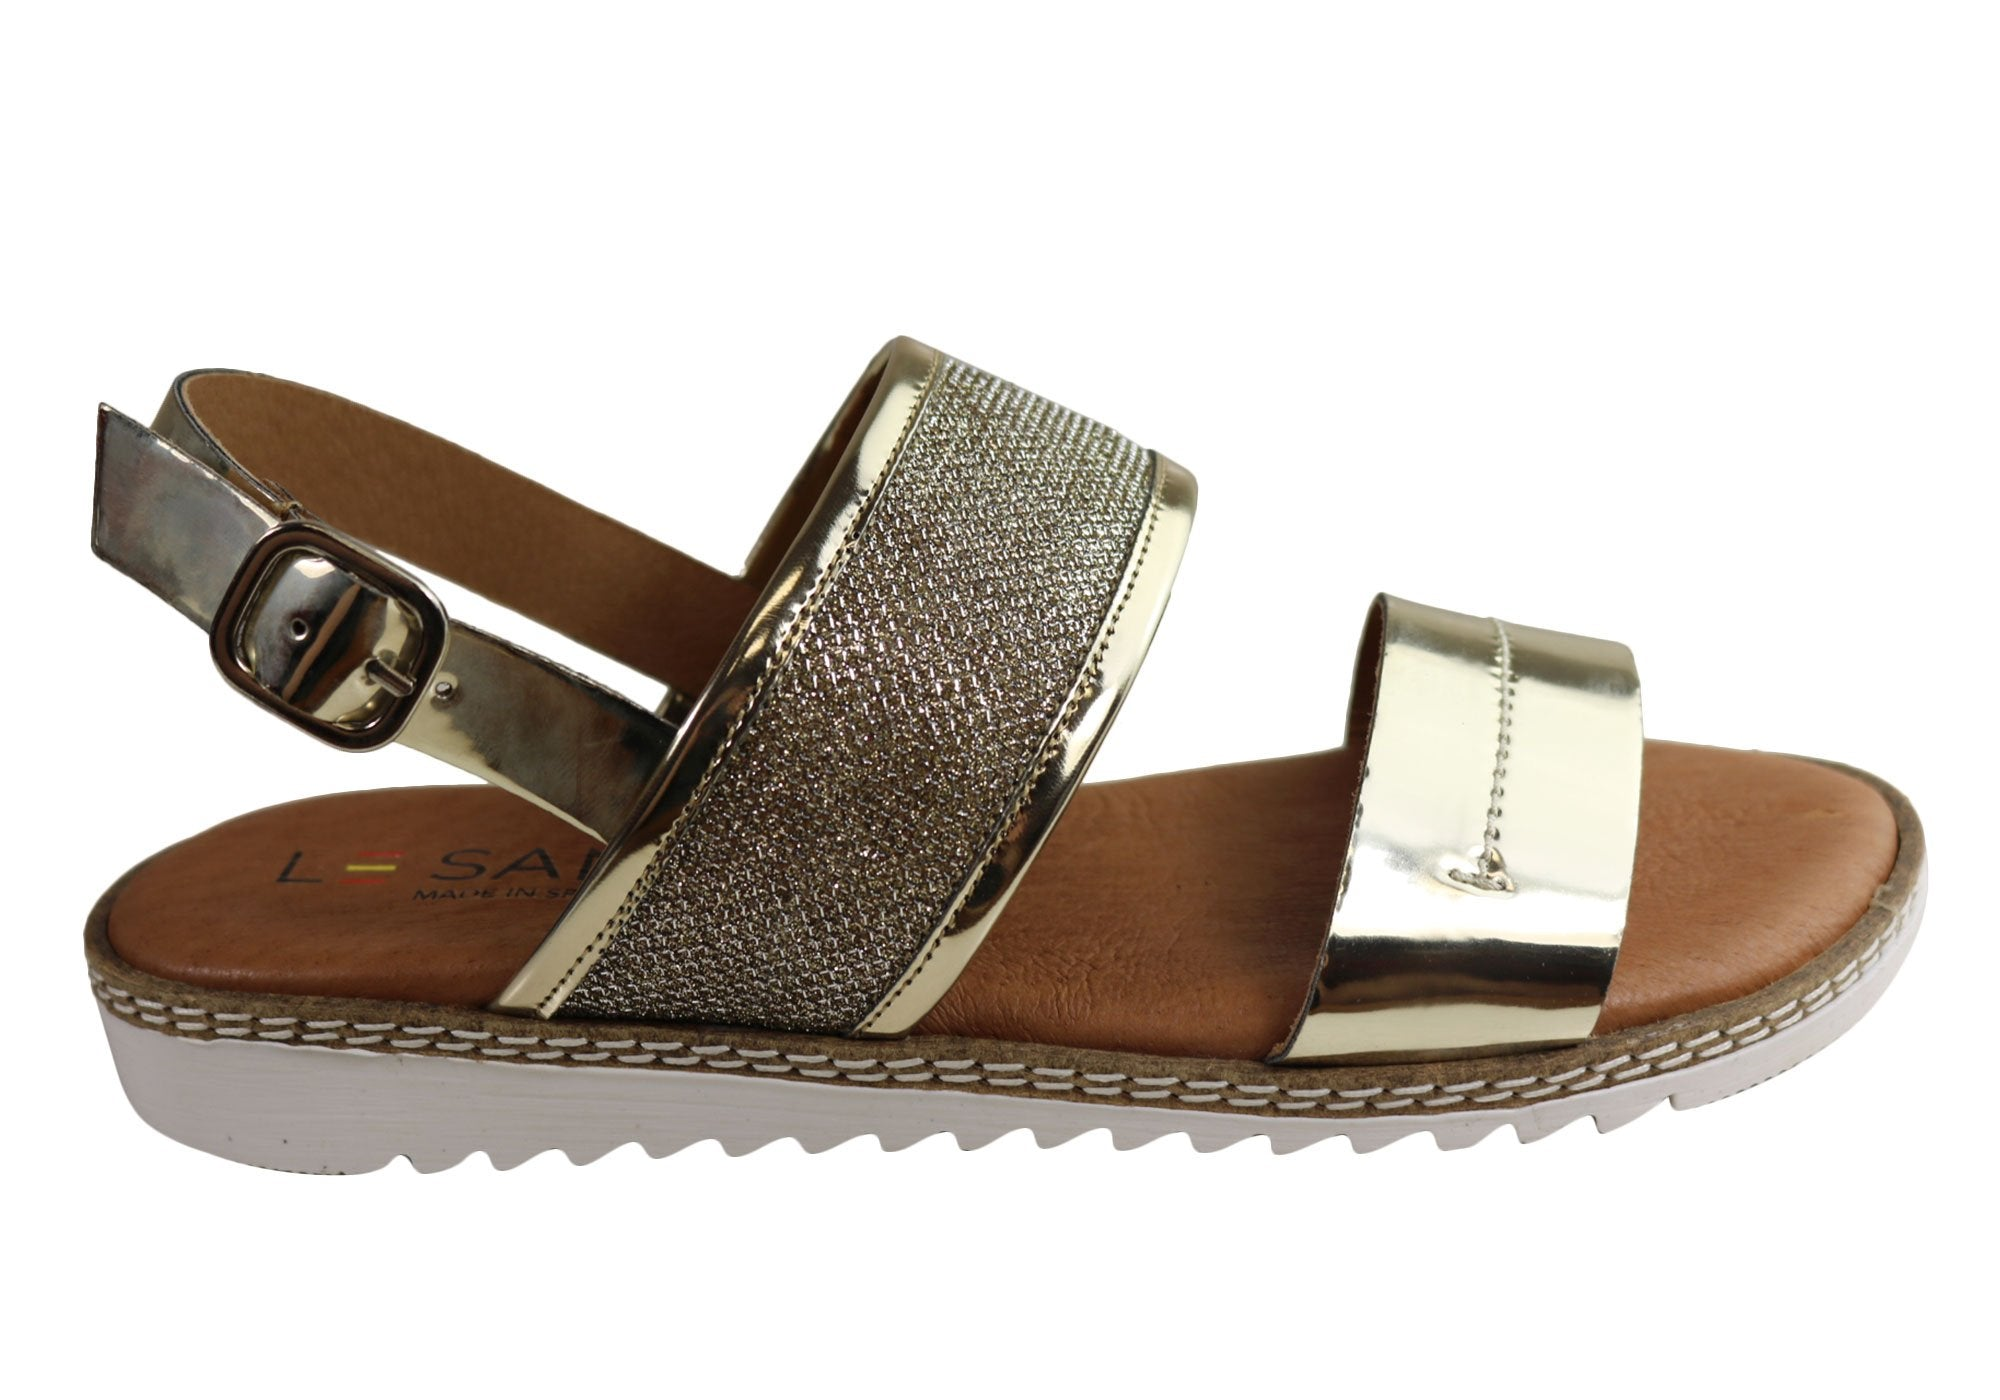 Details about Brand New Le Sansa By Cc Resorts Pamella Womens Comfy Flat Sandals Made In Spain